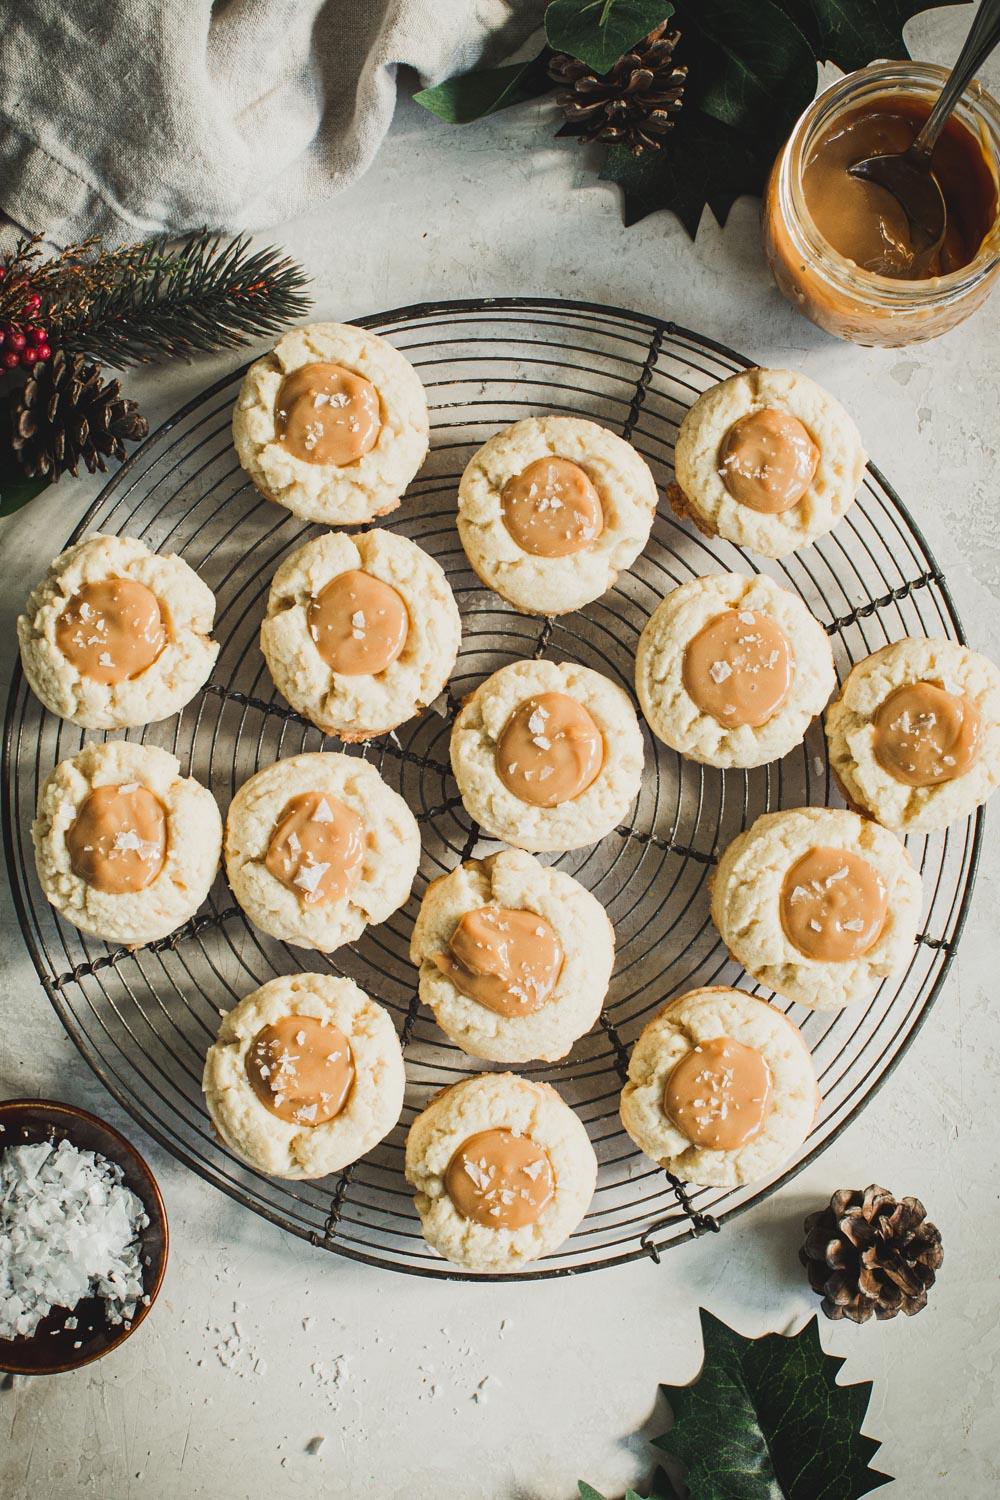 Dulce de Leche thumbprint cookies on a round wire rack with Christmas holly surrounding.